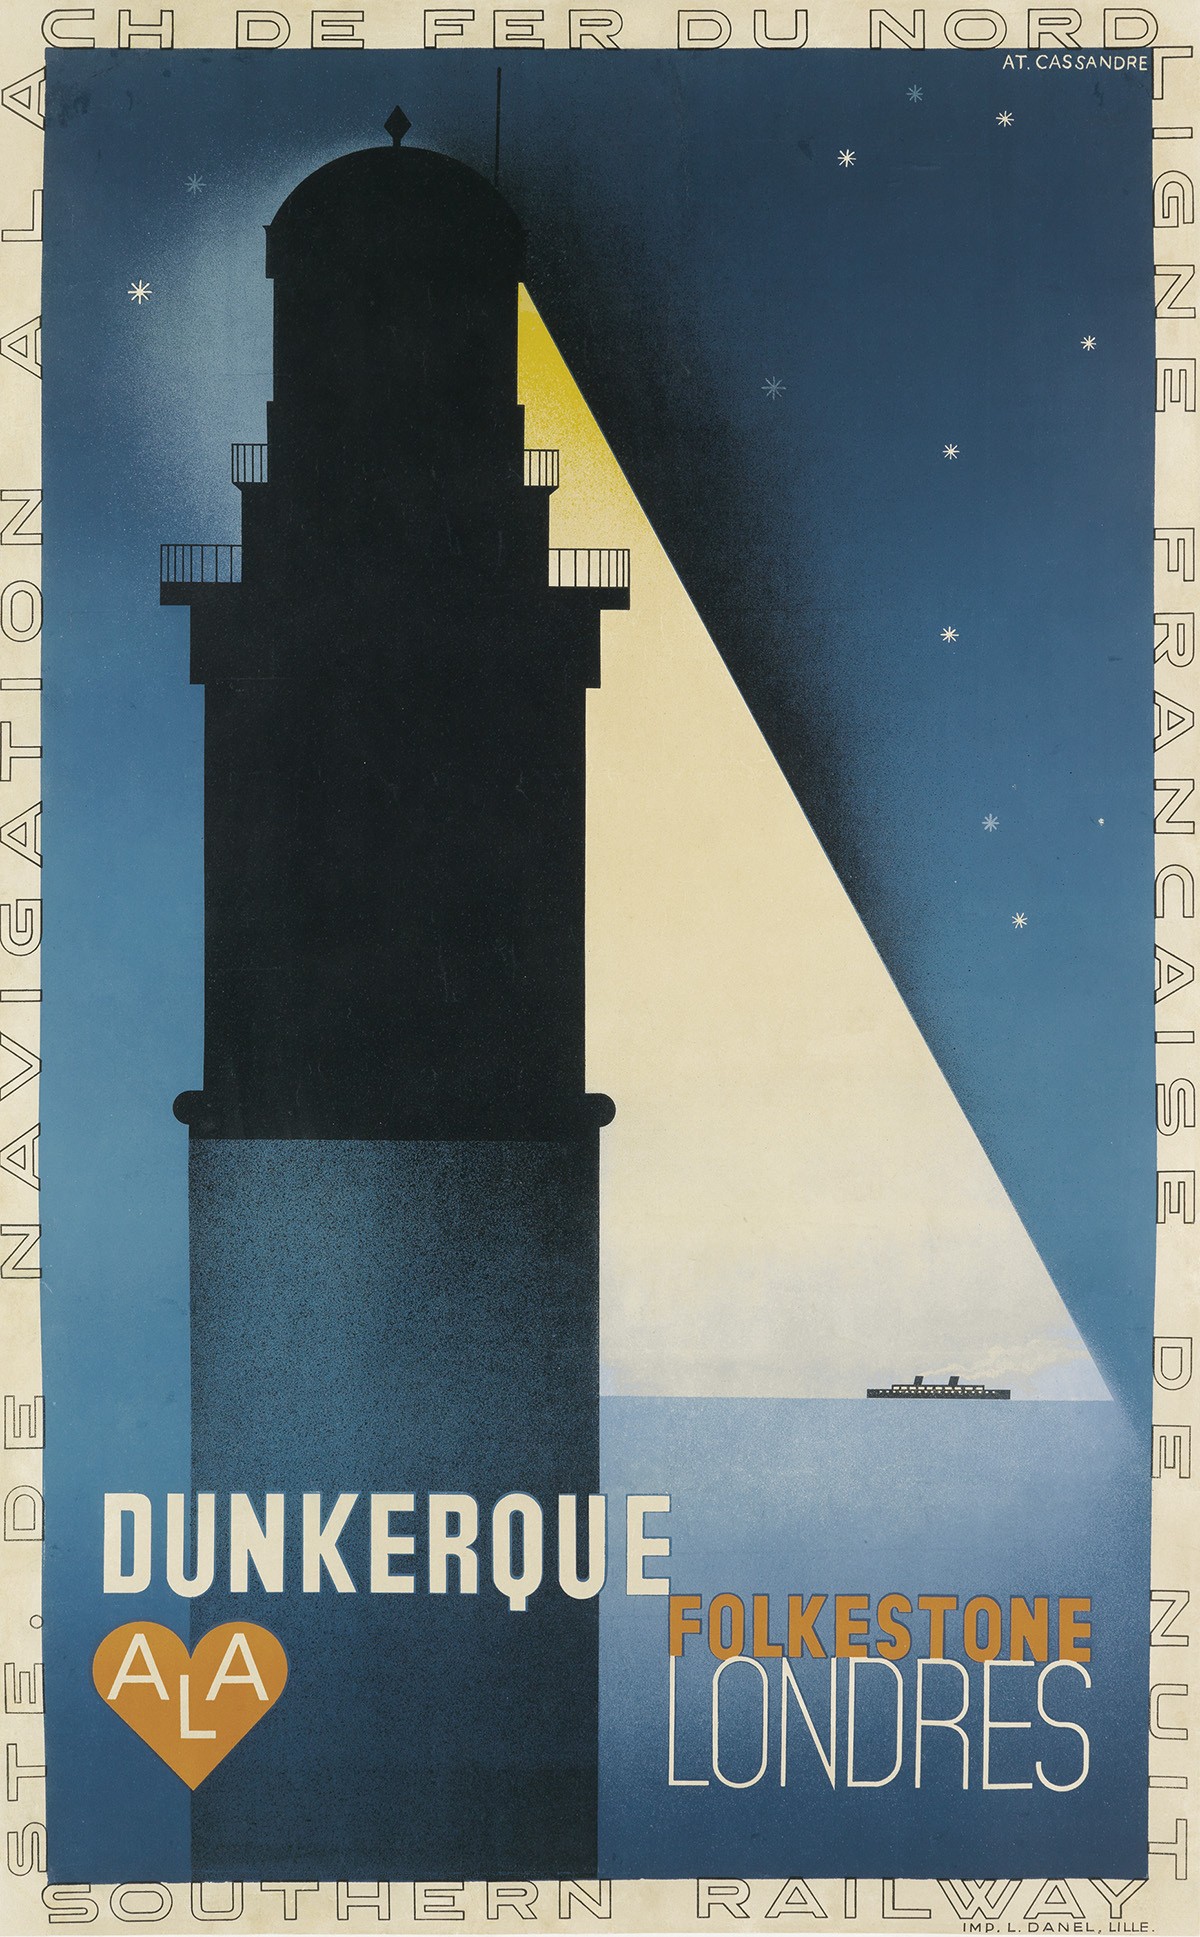 ADOLPHE-MOURON-CASSANDRE-(1901-1968)-DUNKERQUE-1932-38x24-in